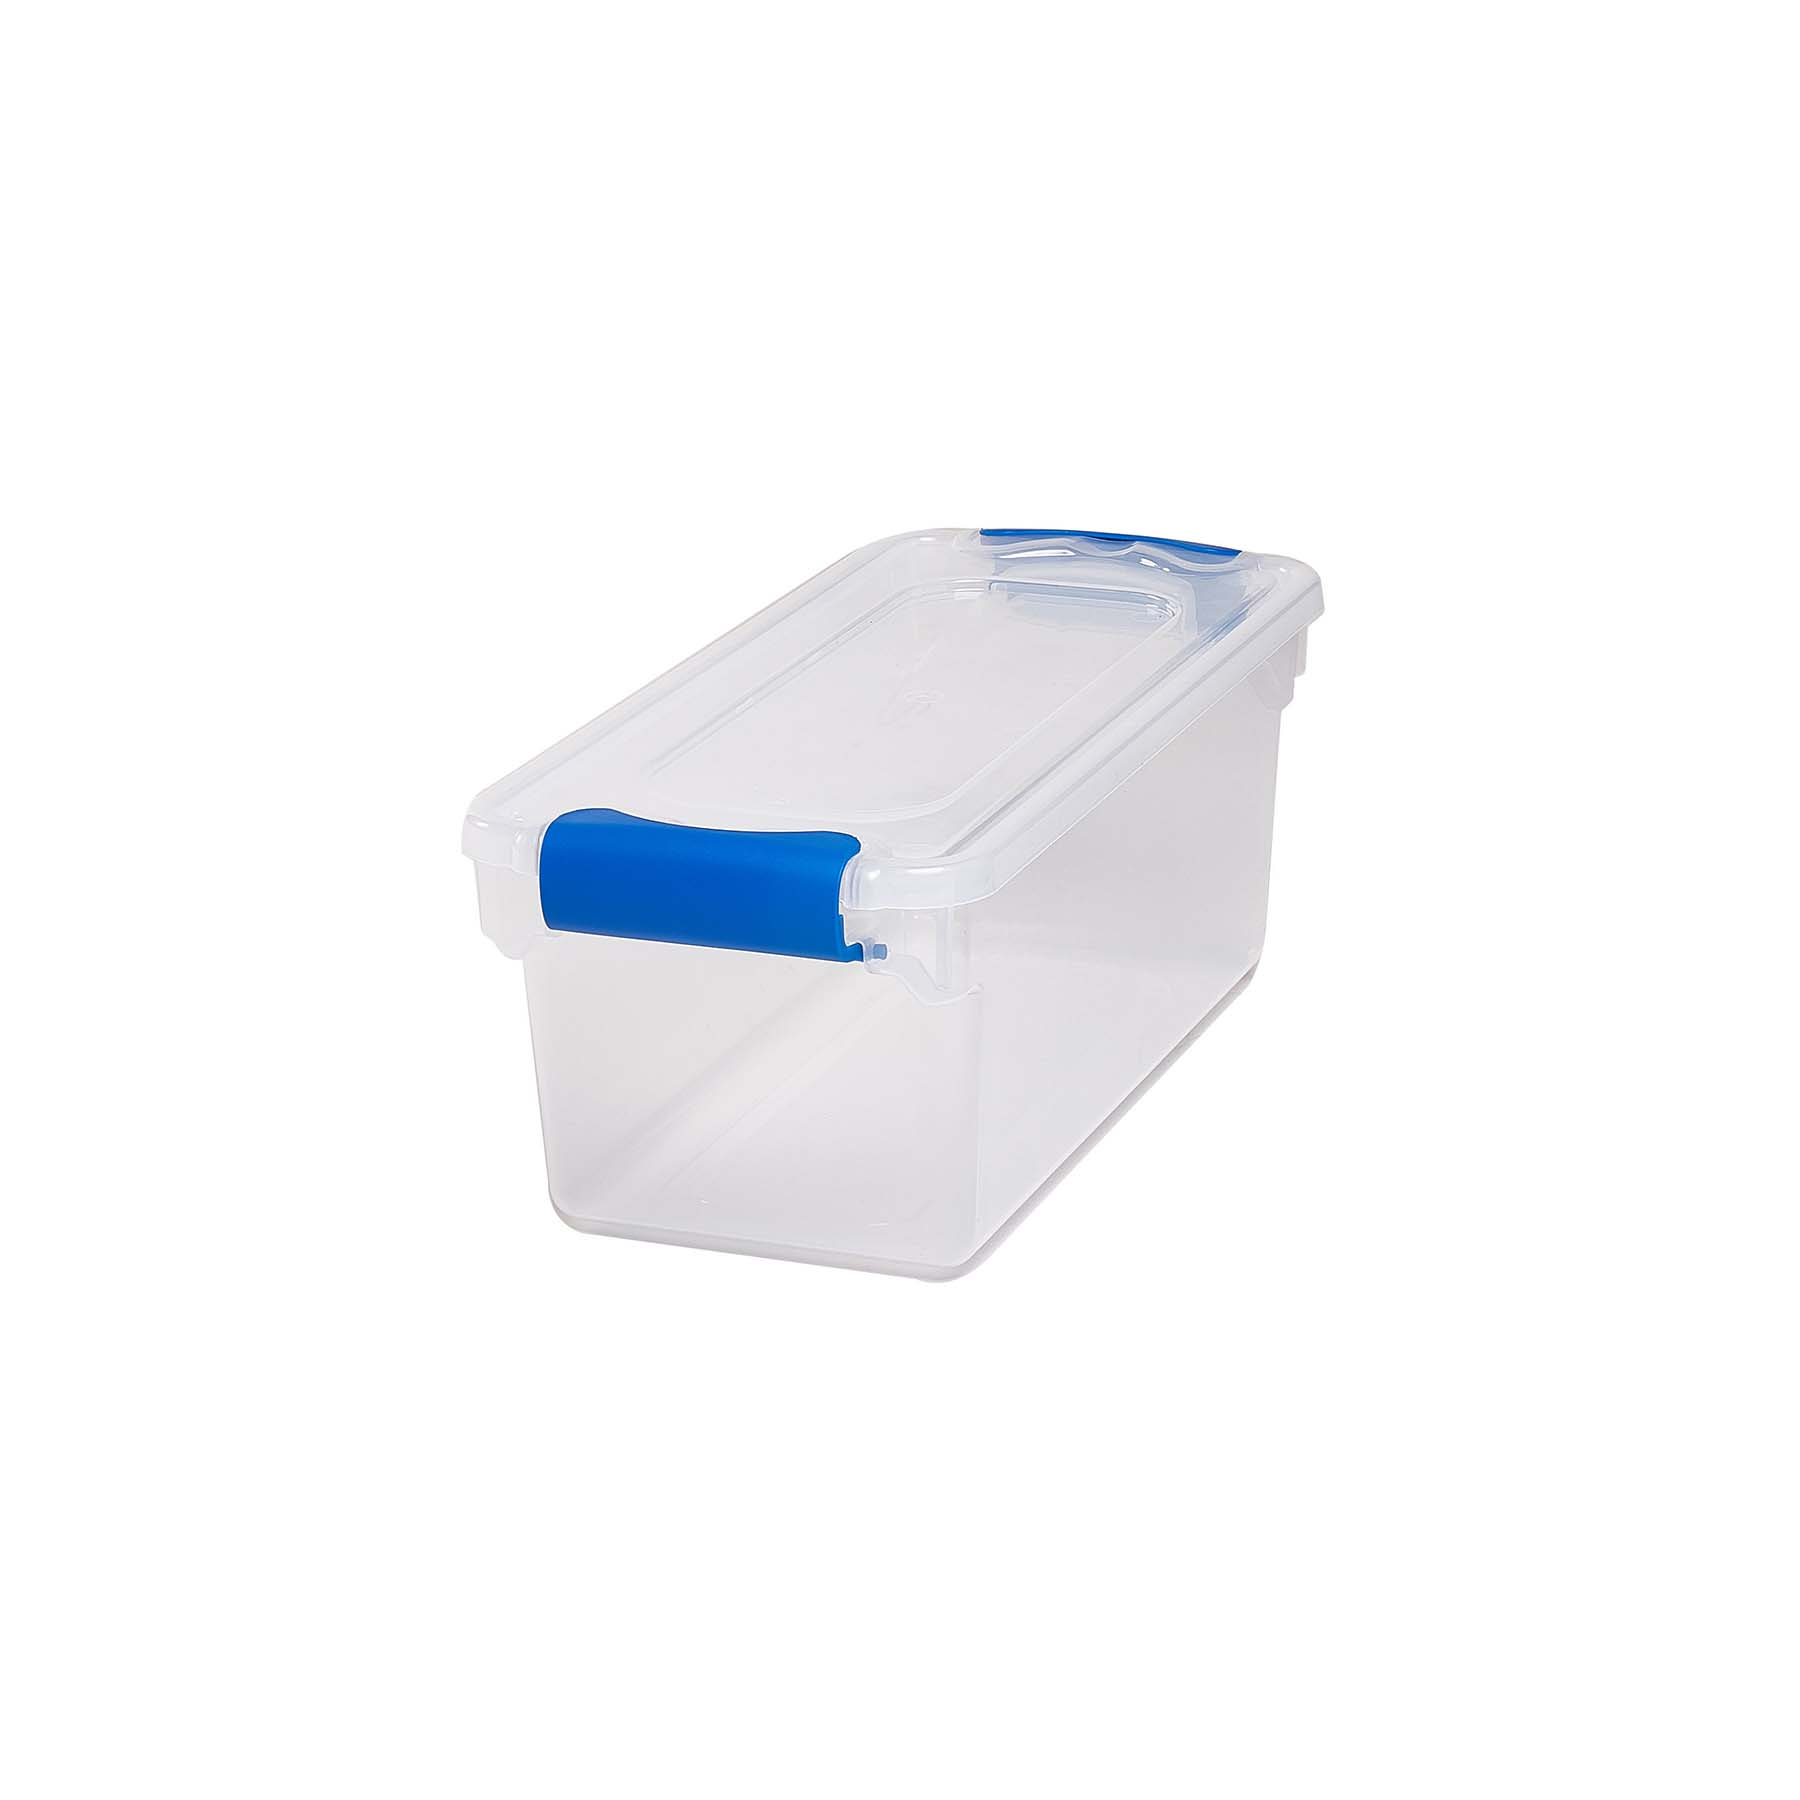 Homz 7.5 Qt. Plastic Latching Shoebox Storage Container with Blue Latches, (Available in Set of 5 or Set of 10)